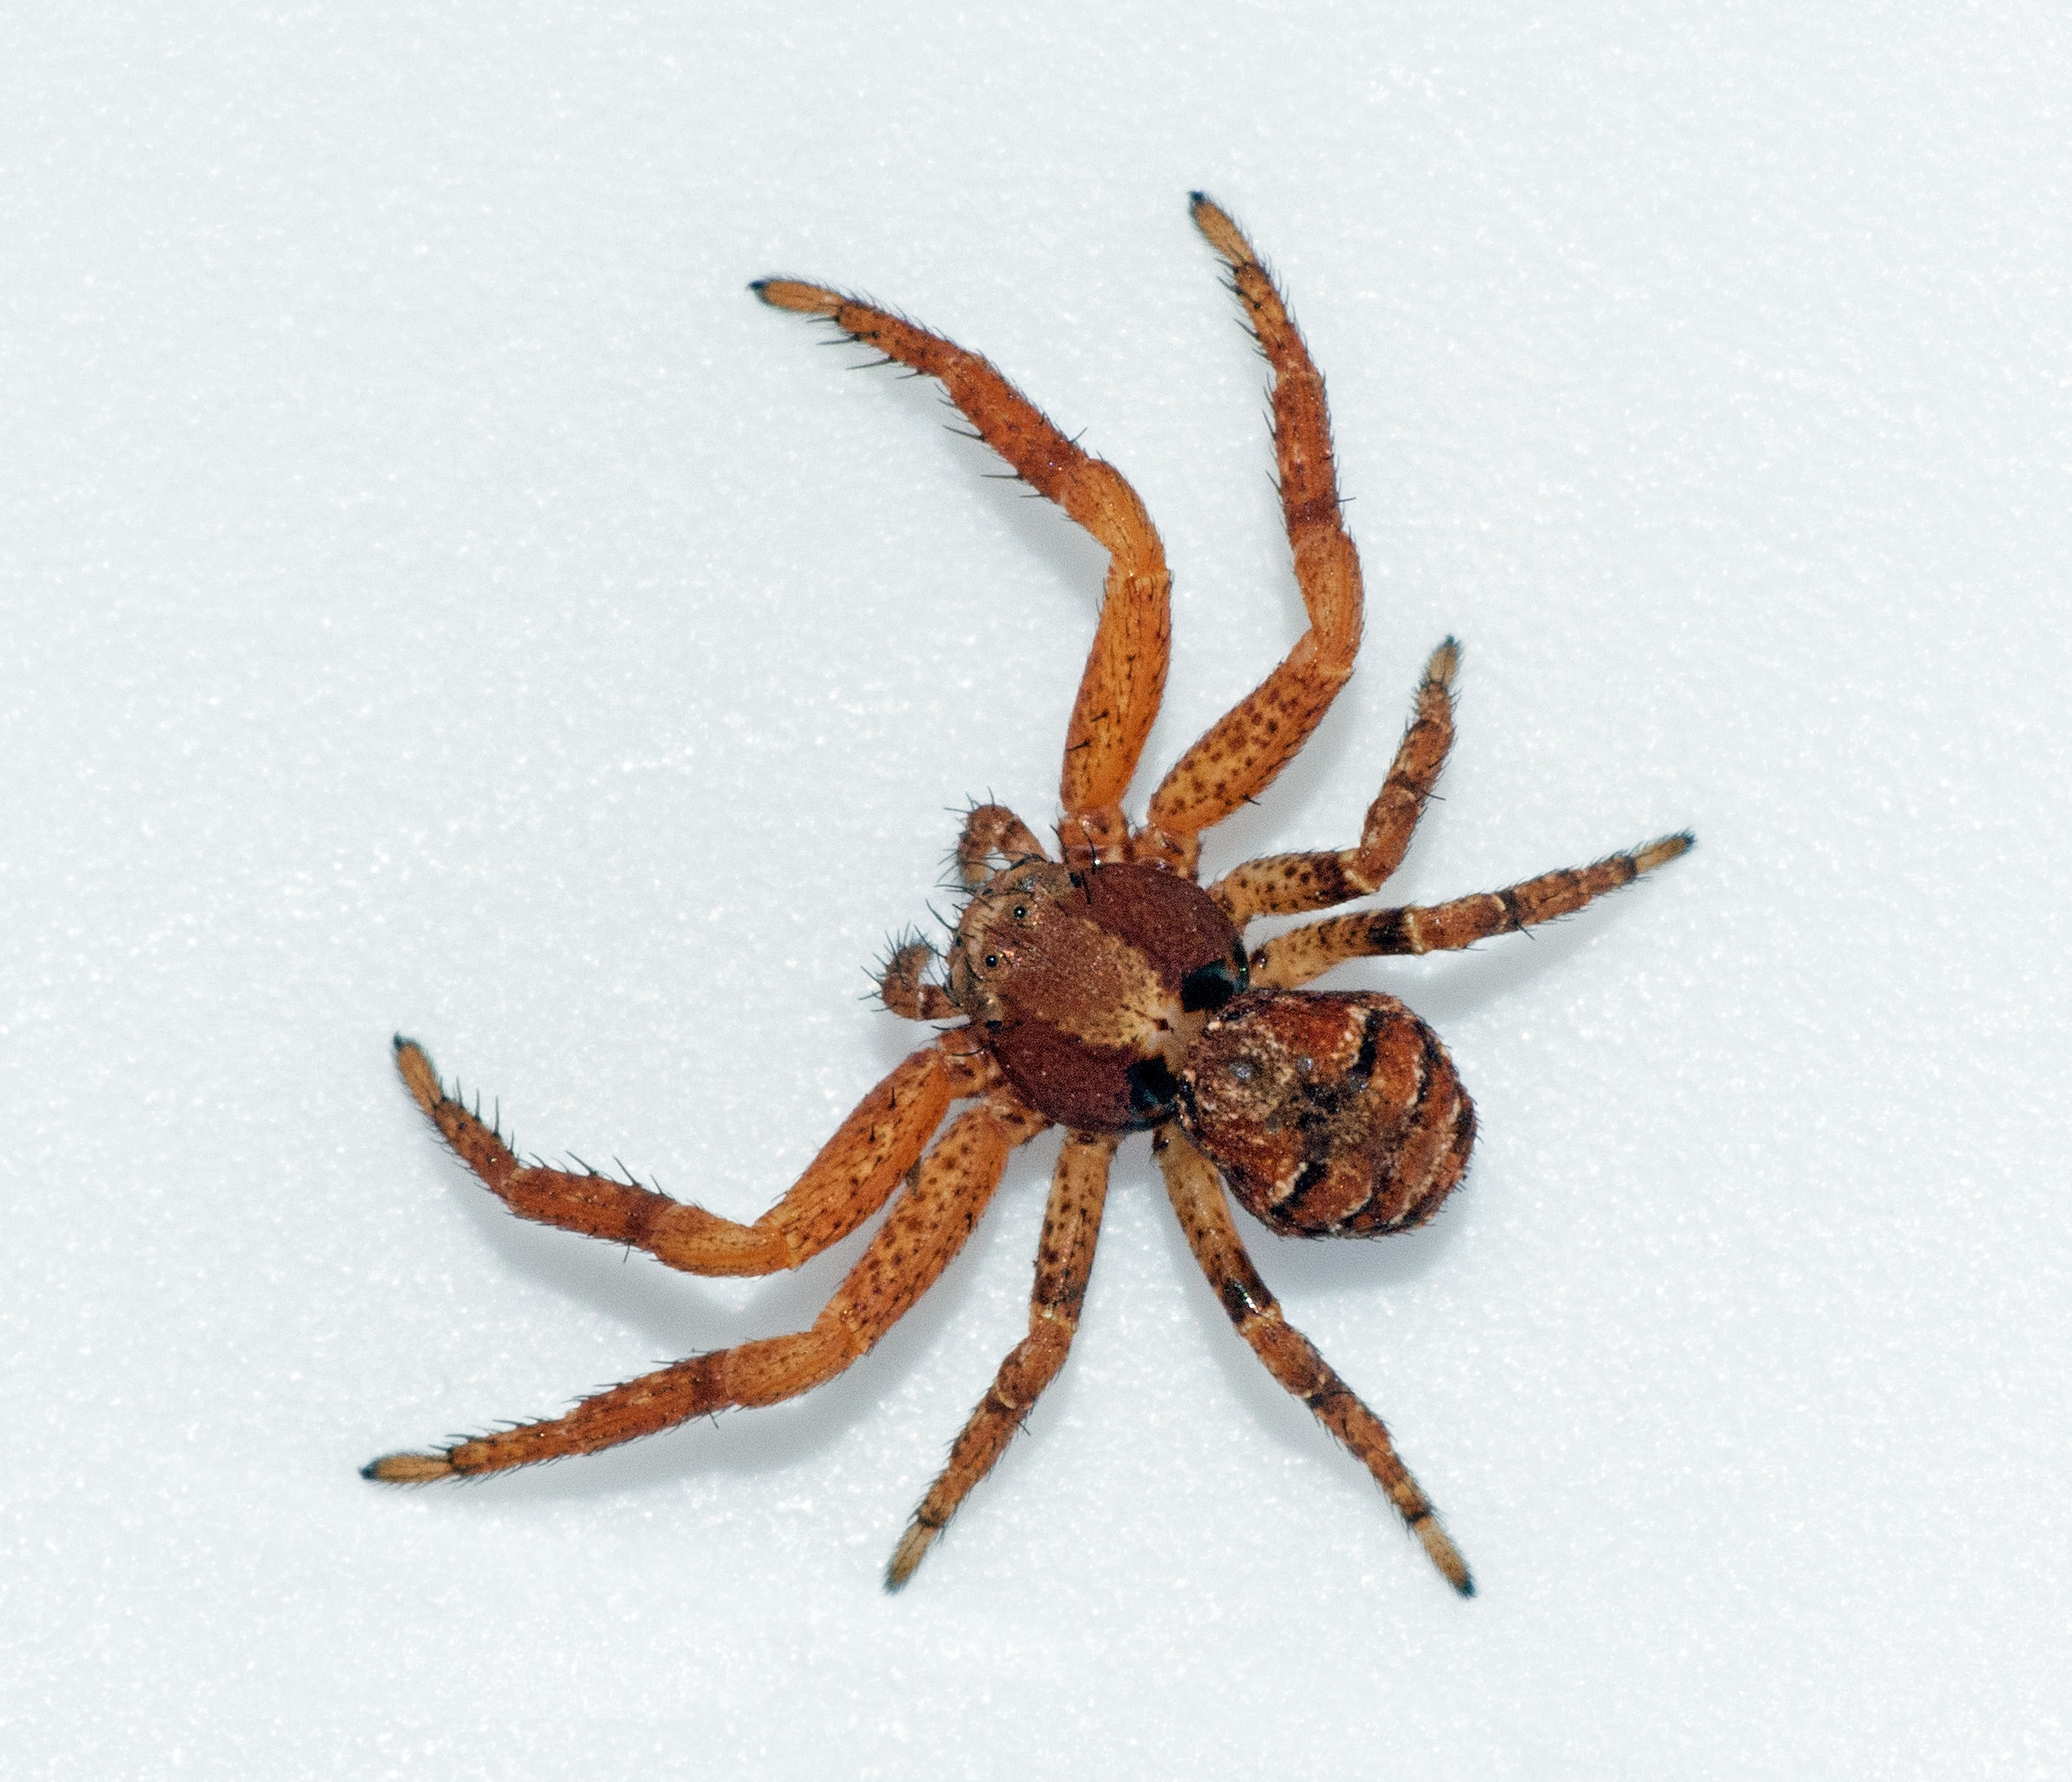 Picture of Xysticus locuples - Female - Dorsal